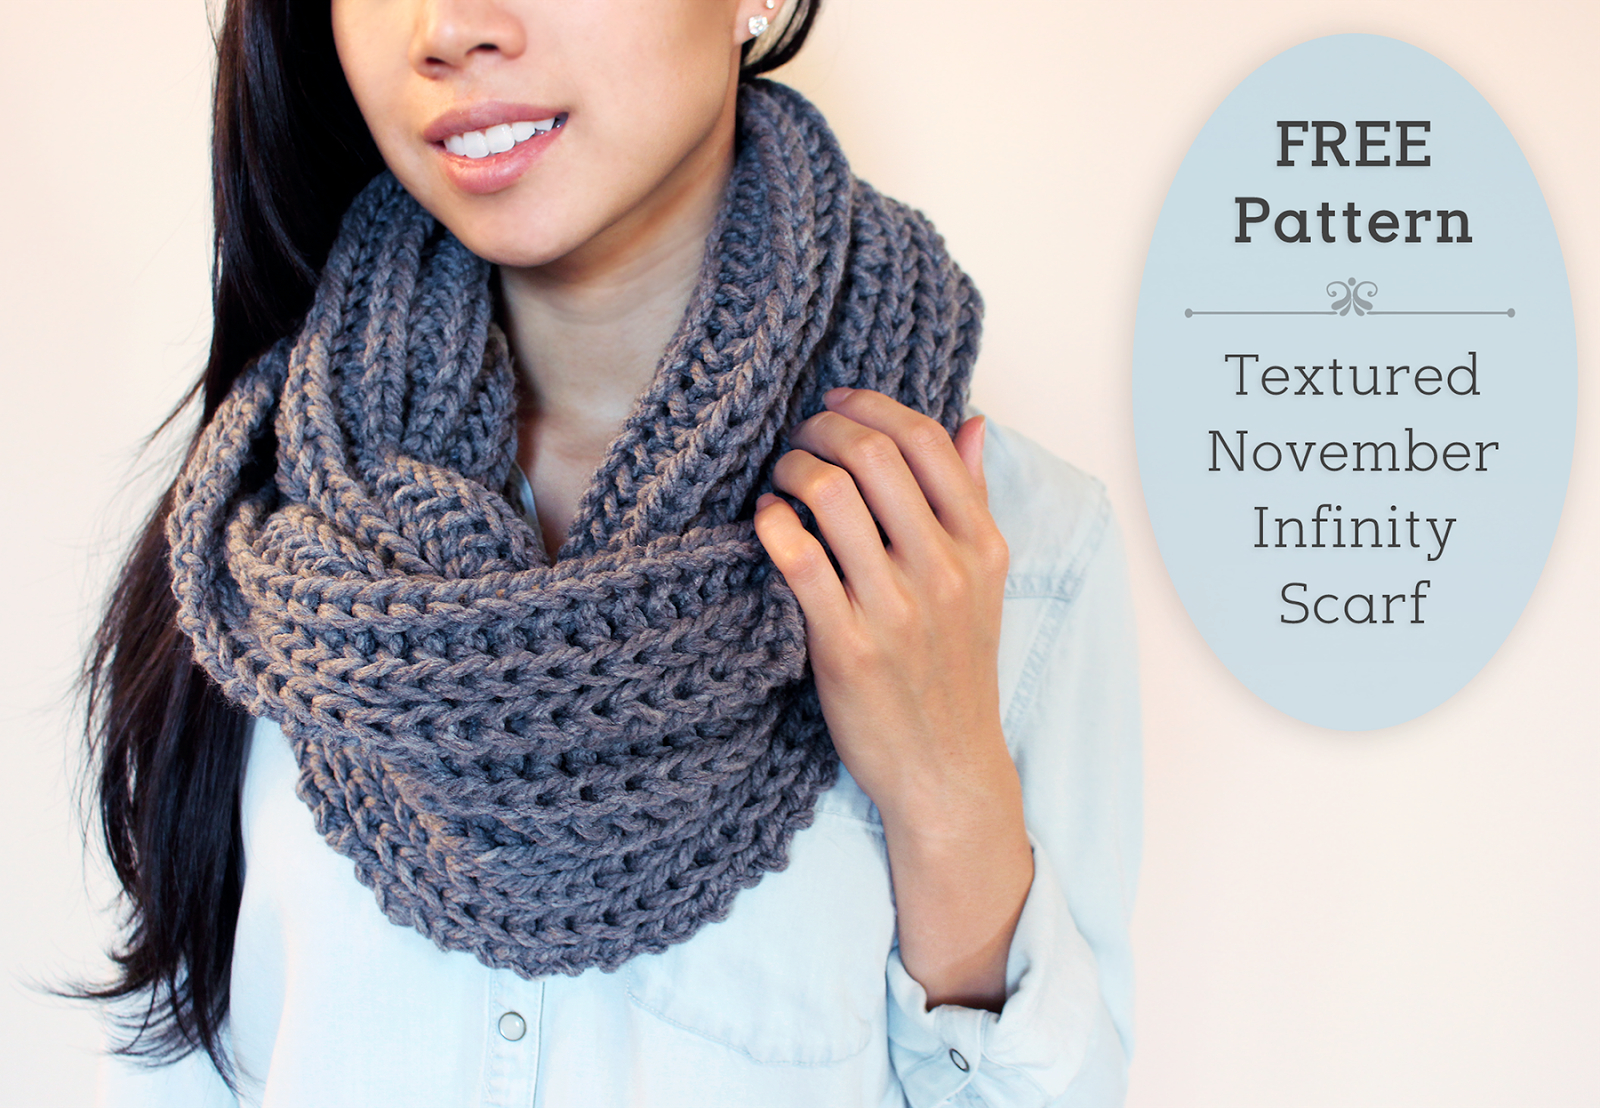 Knit Circle Pattern Purllin Textured November Infinity Scarf Free Pattern